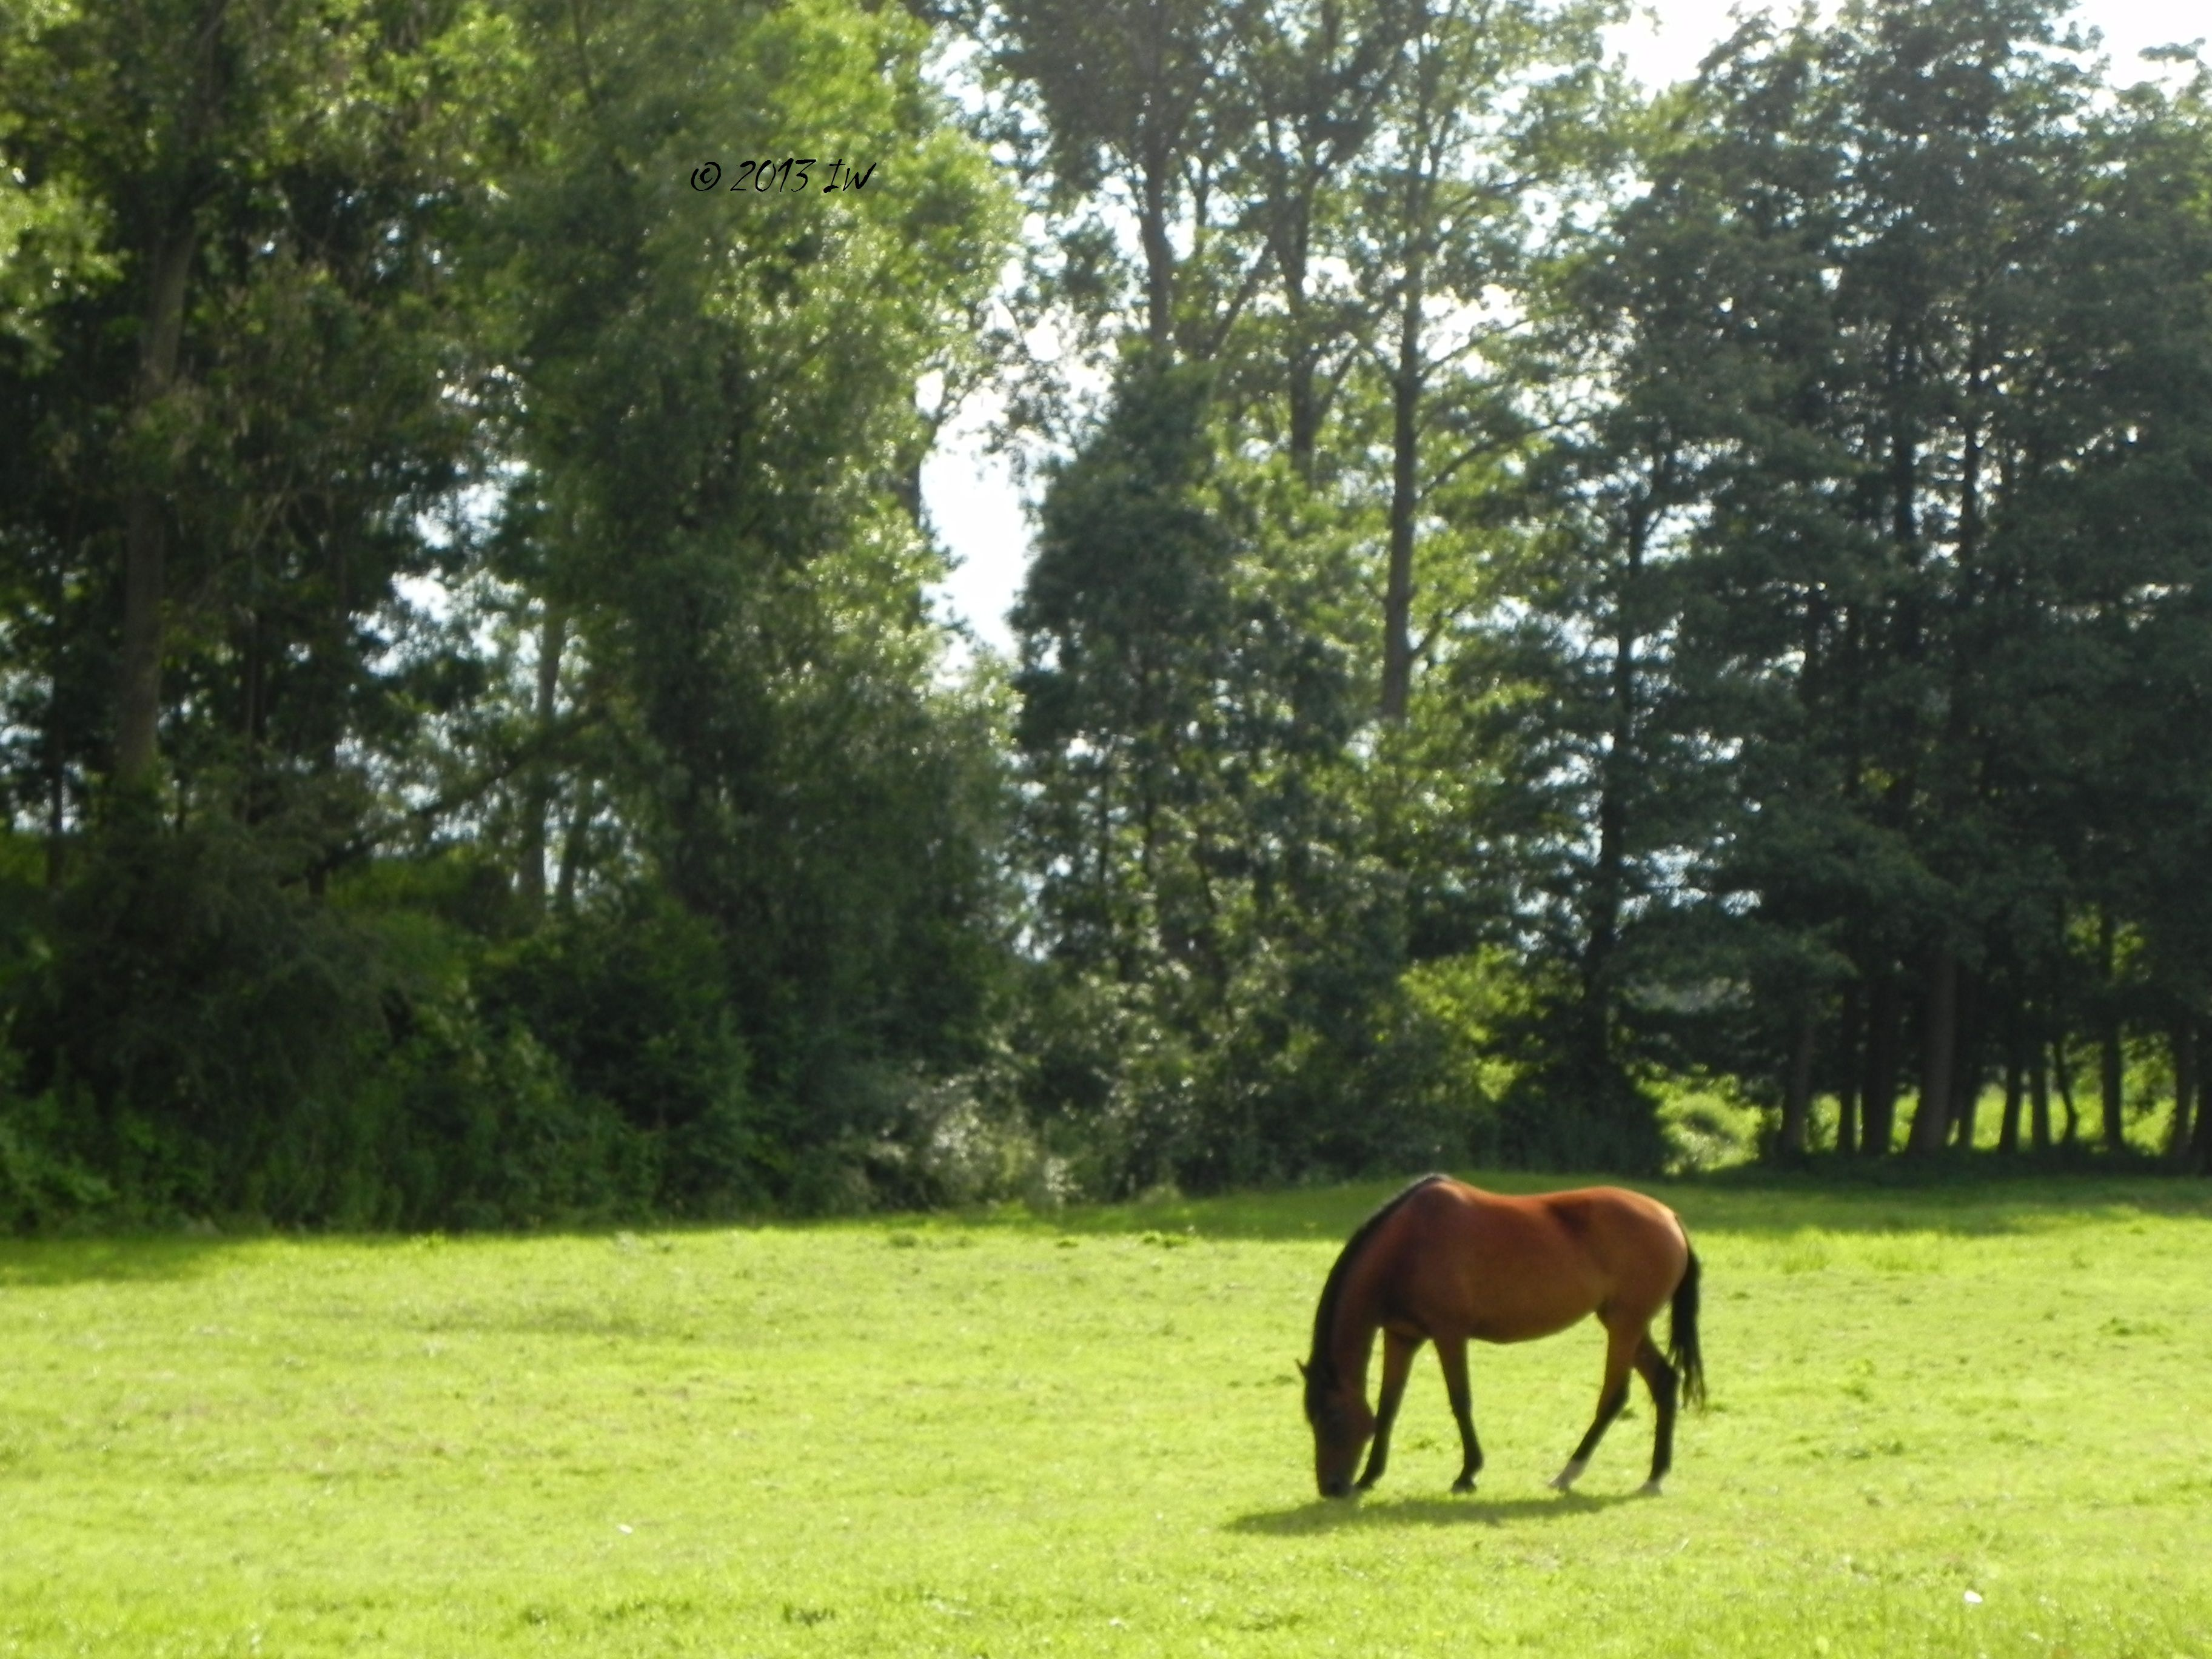 Horse at Usedom, Germany